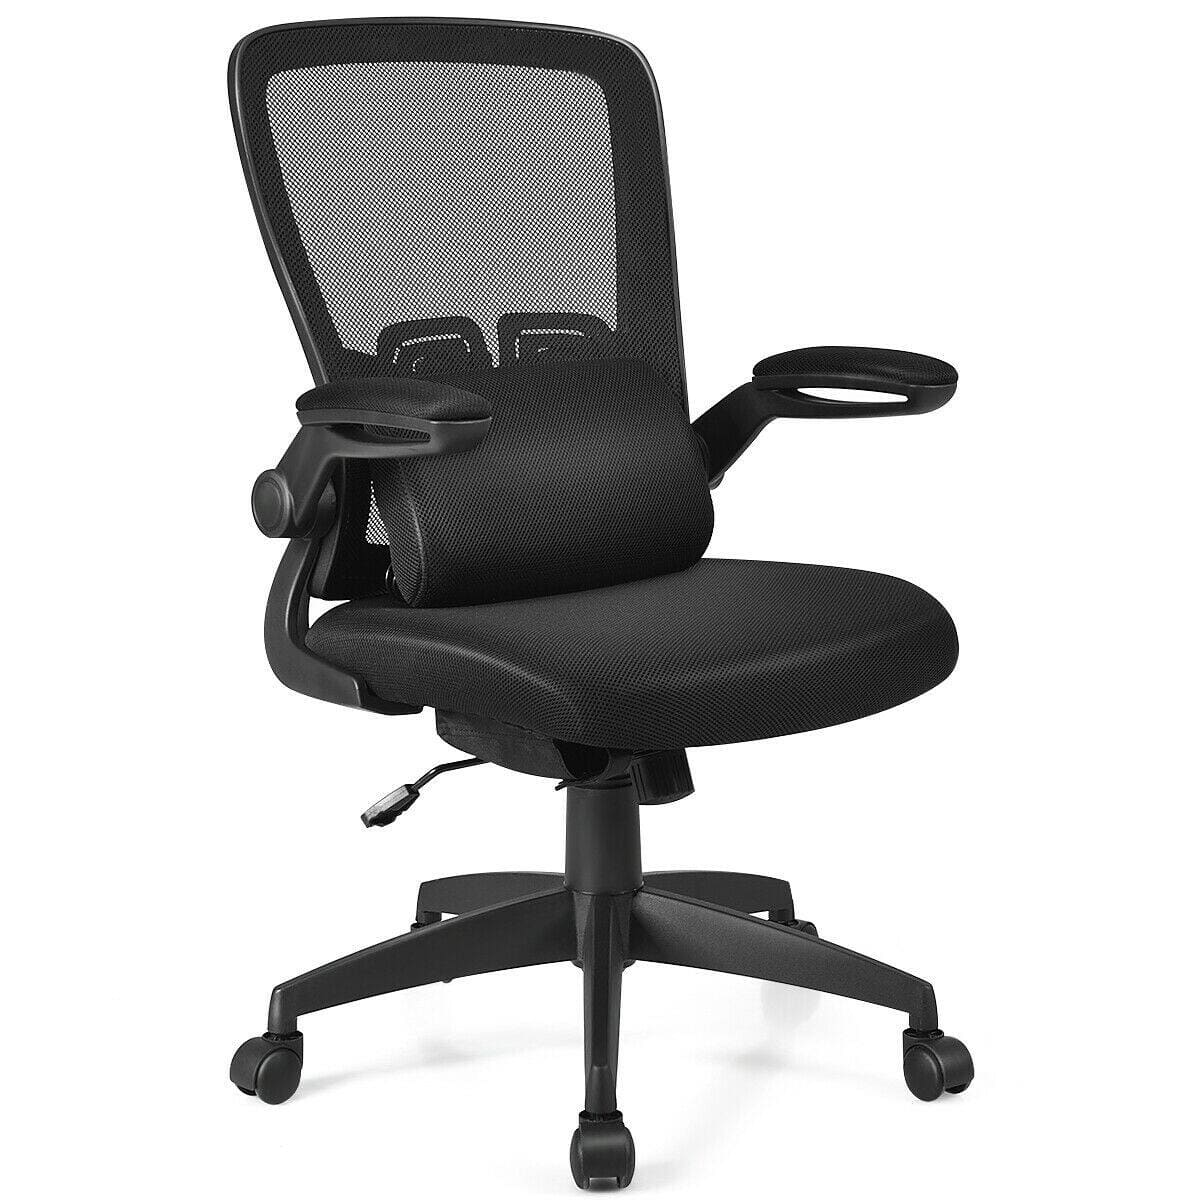 Costway Ergonomic Desk Chair with Flip up Armrest - $86.95 + Free Shipping